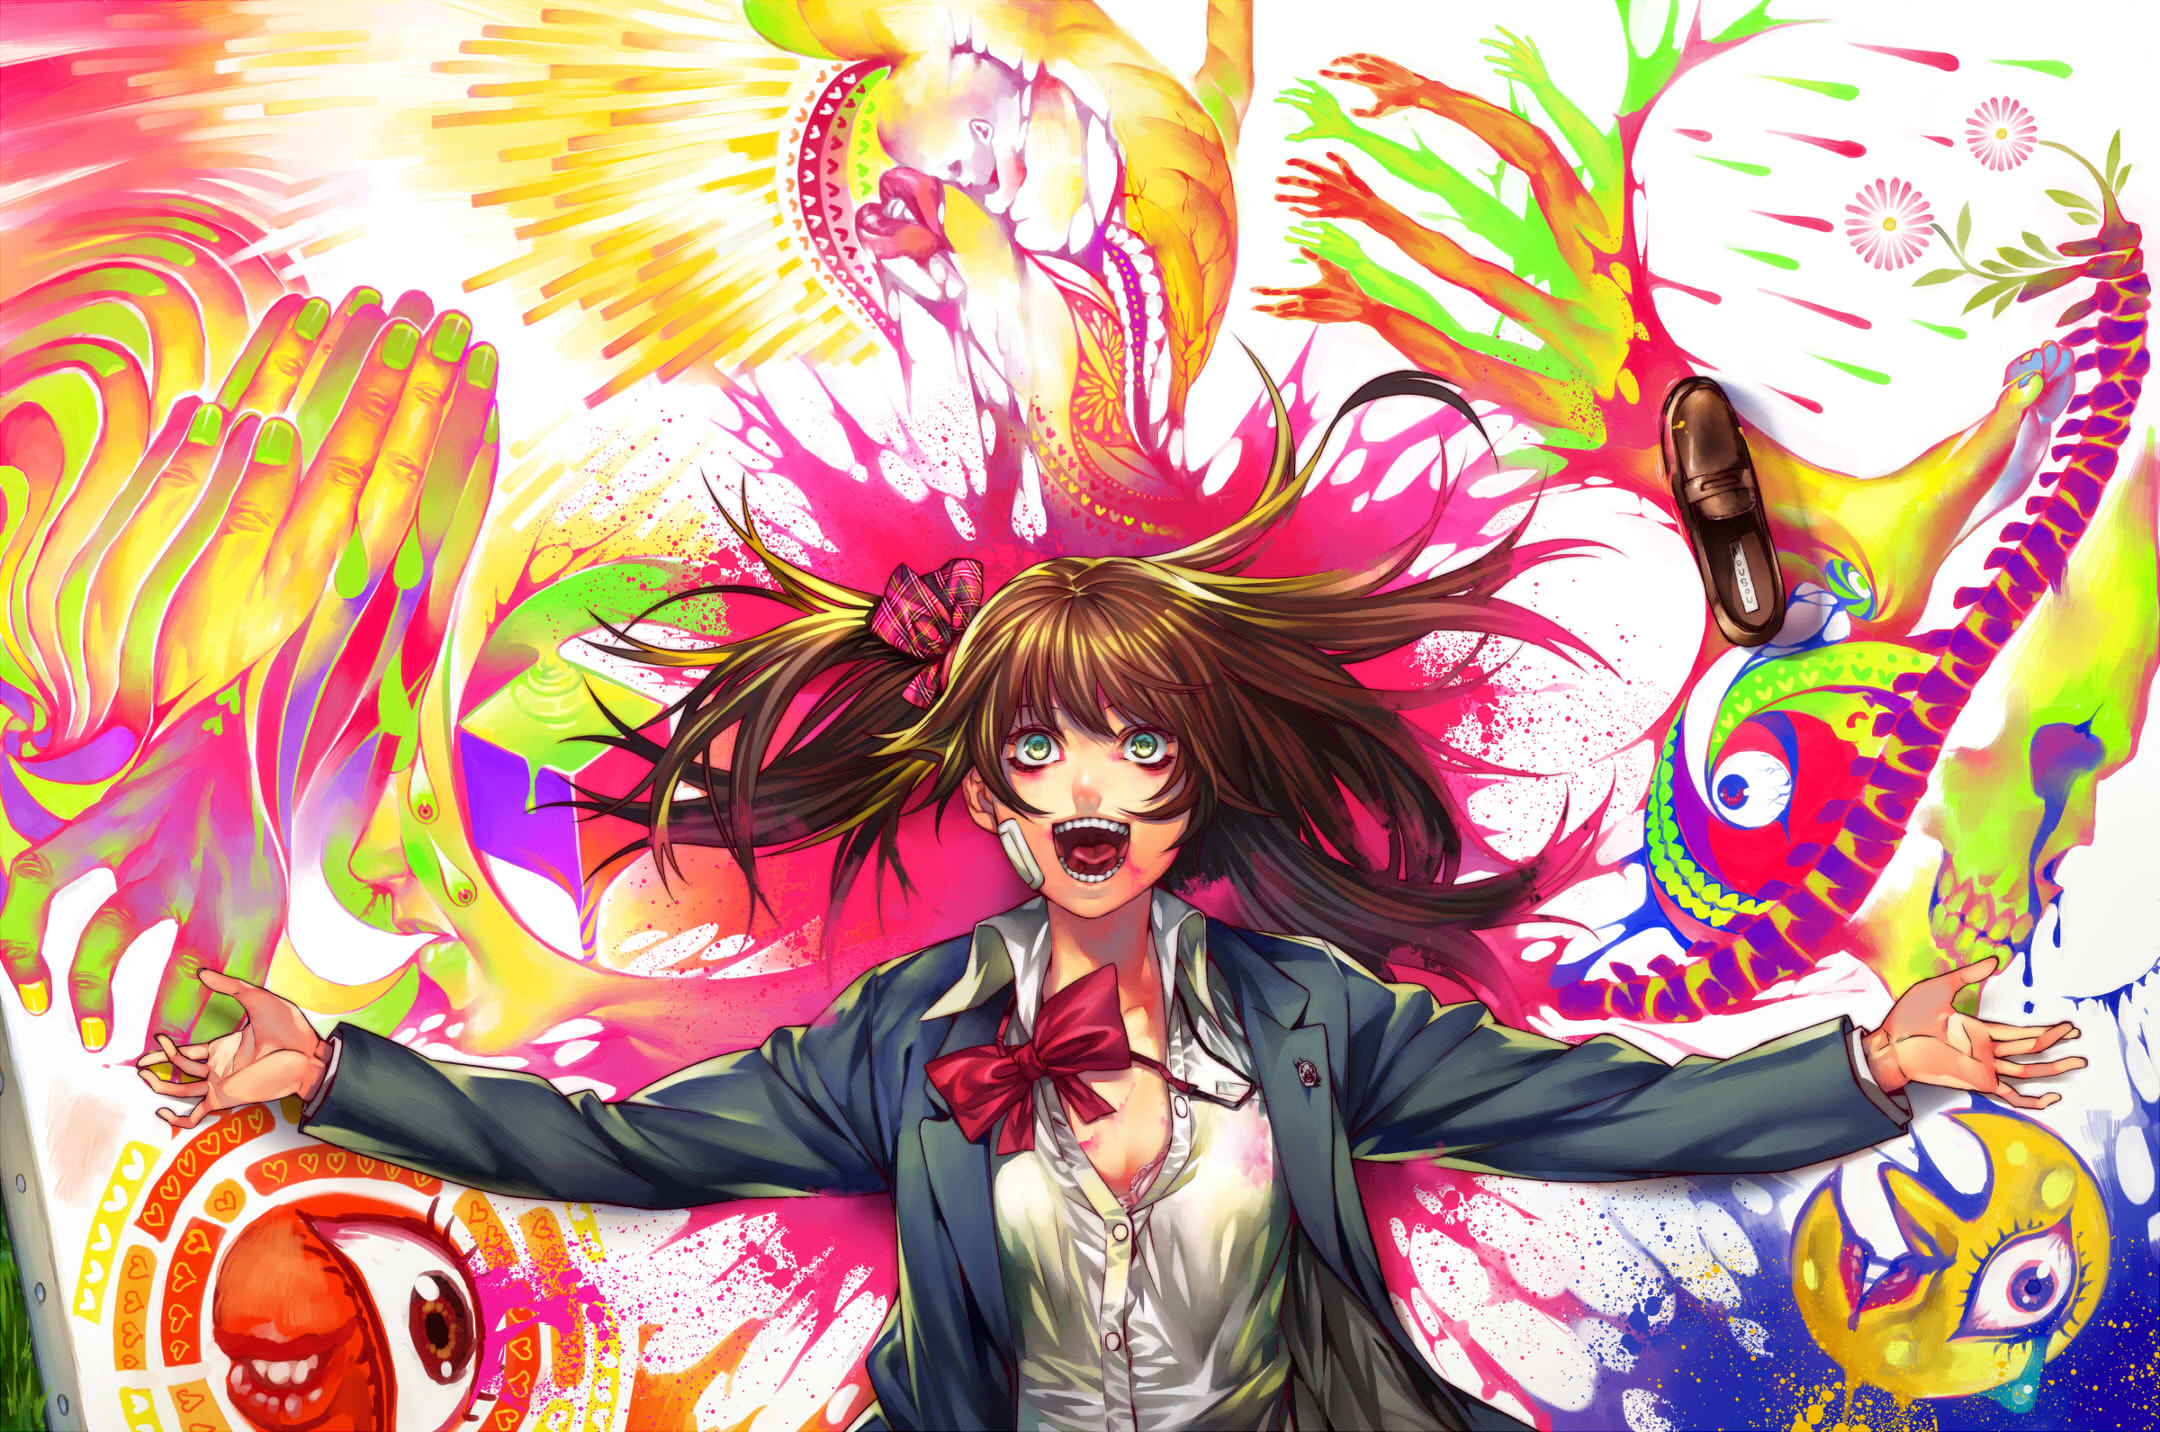 Anime 2160x1432 anime girls school uniform JK blood original characters small boobs cleavage long hair brunette open mouth suicide graffiti no bra laughing messy hair red ribbon green eyes 2D looking at viewer fan art